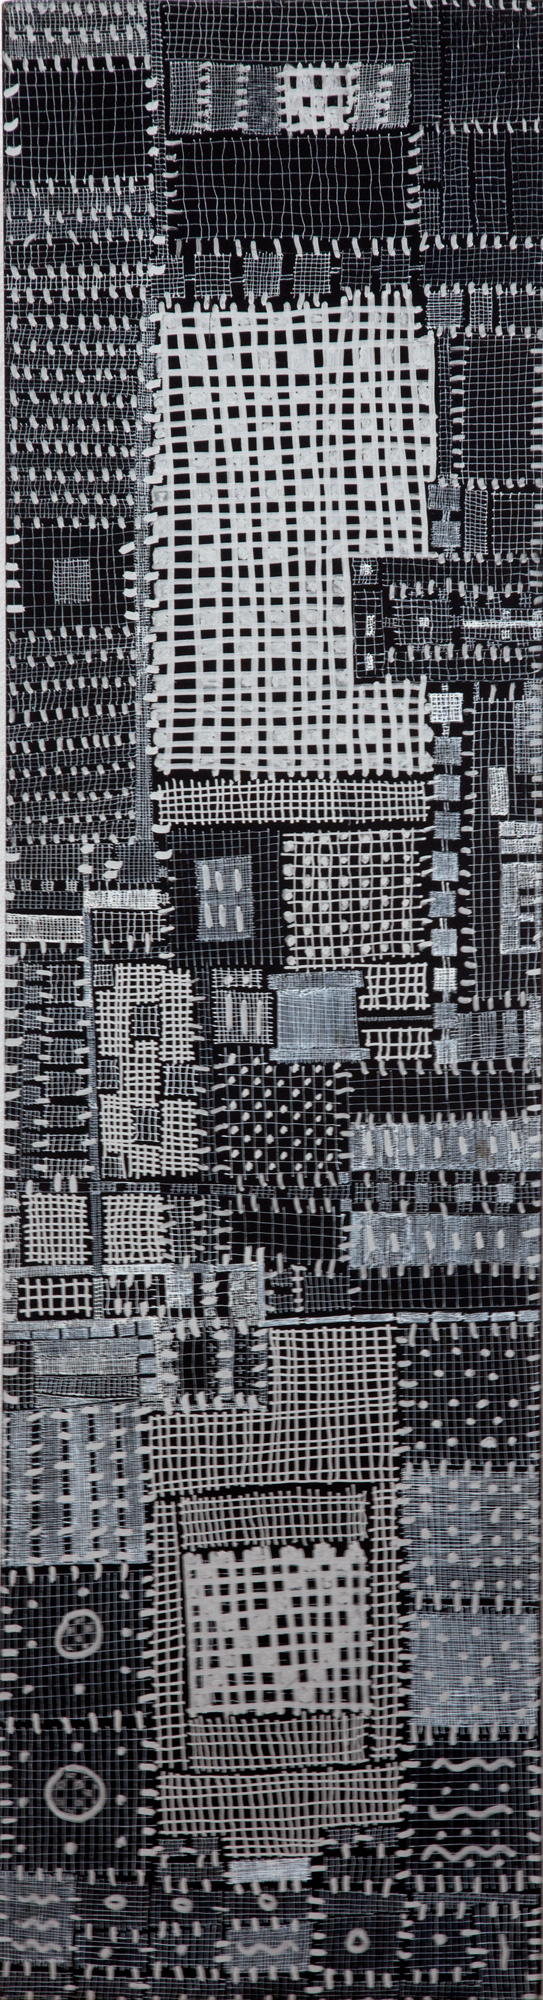 "919_City Scapes_pen on panel_29.5 x 8""_1999.jpg"